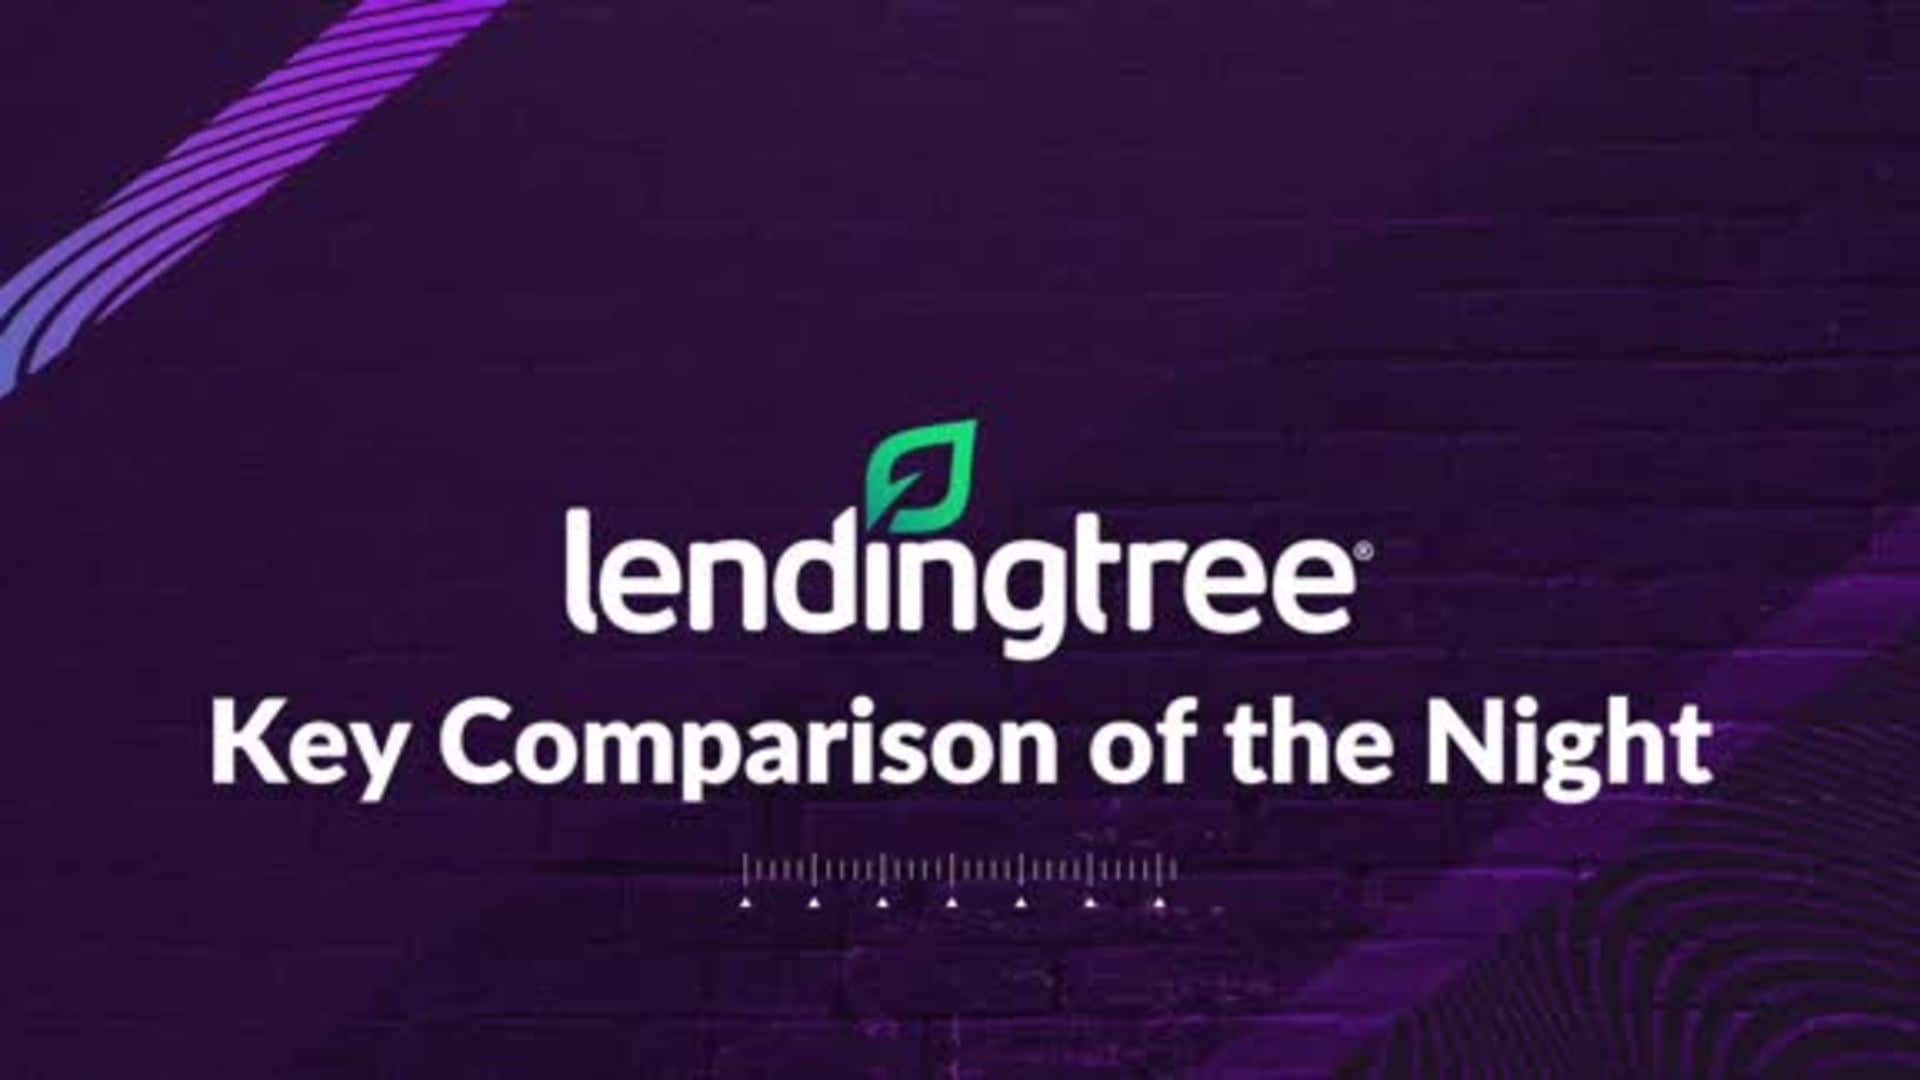 LendingTree's Key Comparison of the Night - 1/20/20